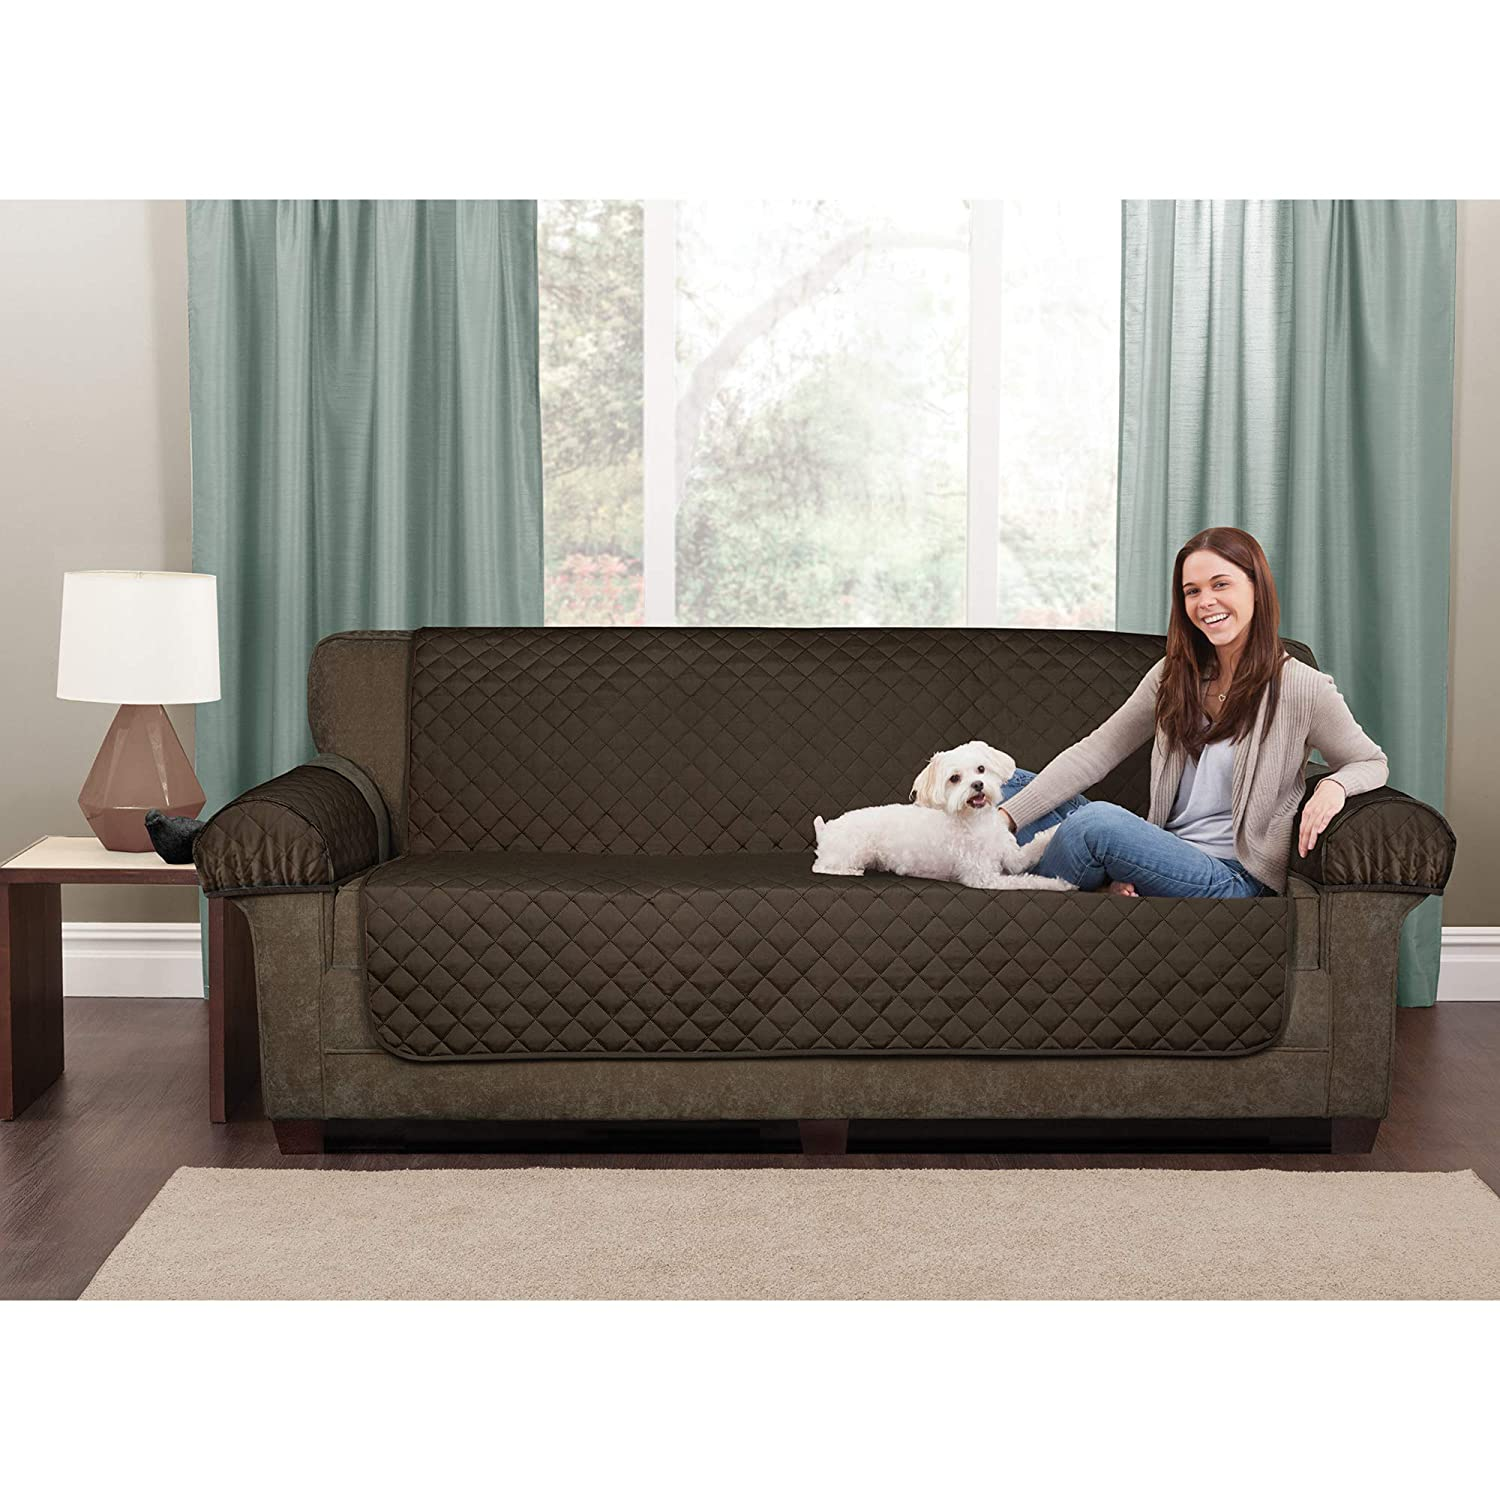 Amazon.com  MAYTEX Casual Smart Quilted Faux Suede Waterproof 3 Piece  Loveseat Furniture Pet Cover Protector 228377137f